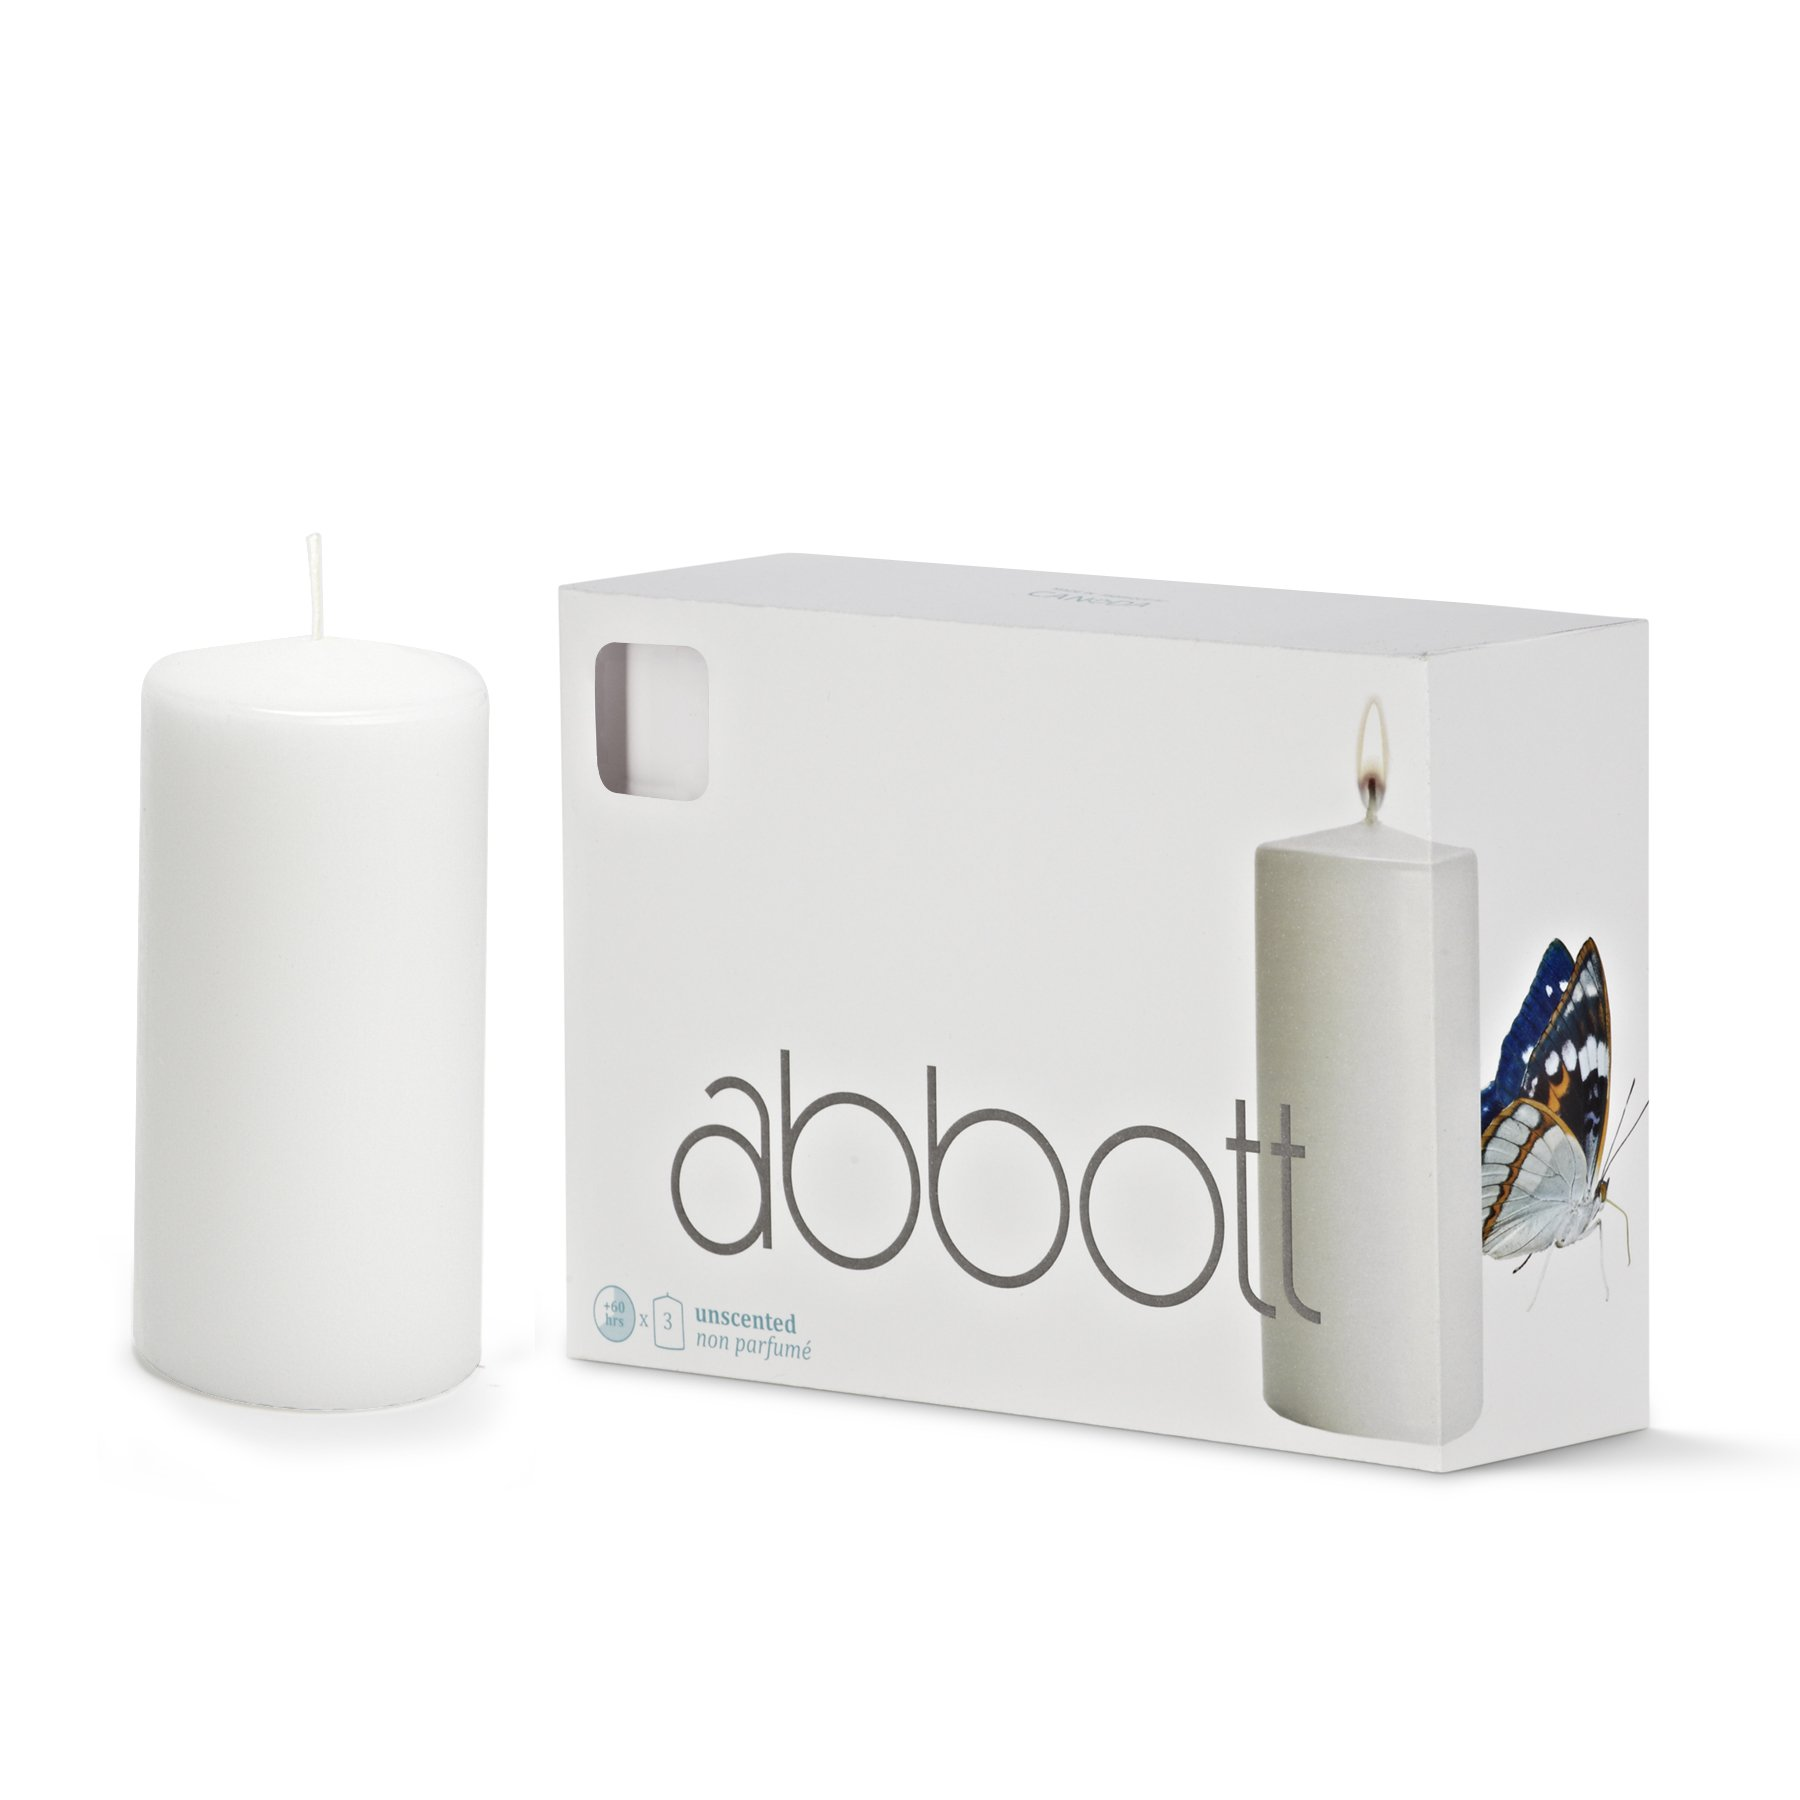 Abbott Collection Classic Pillar Candles, White, Medium (3 pack) by Abbott Collection